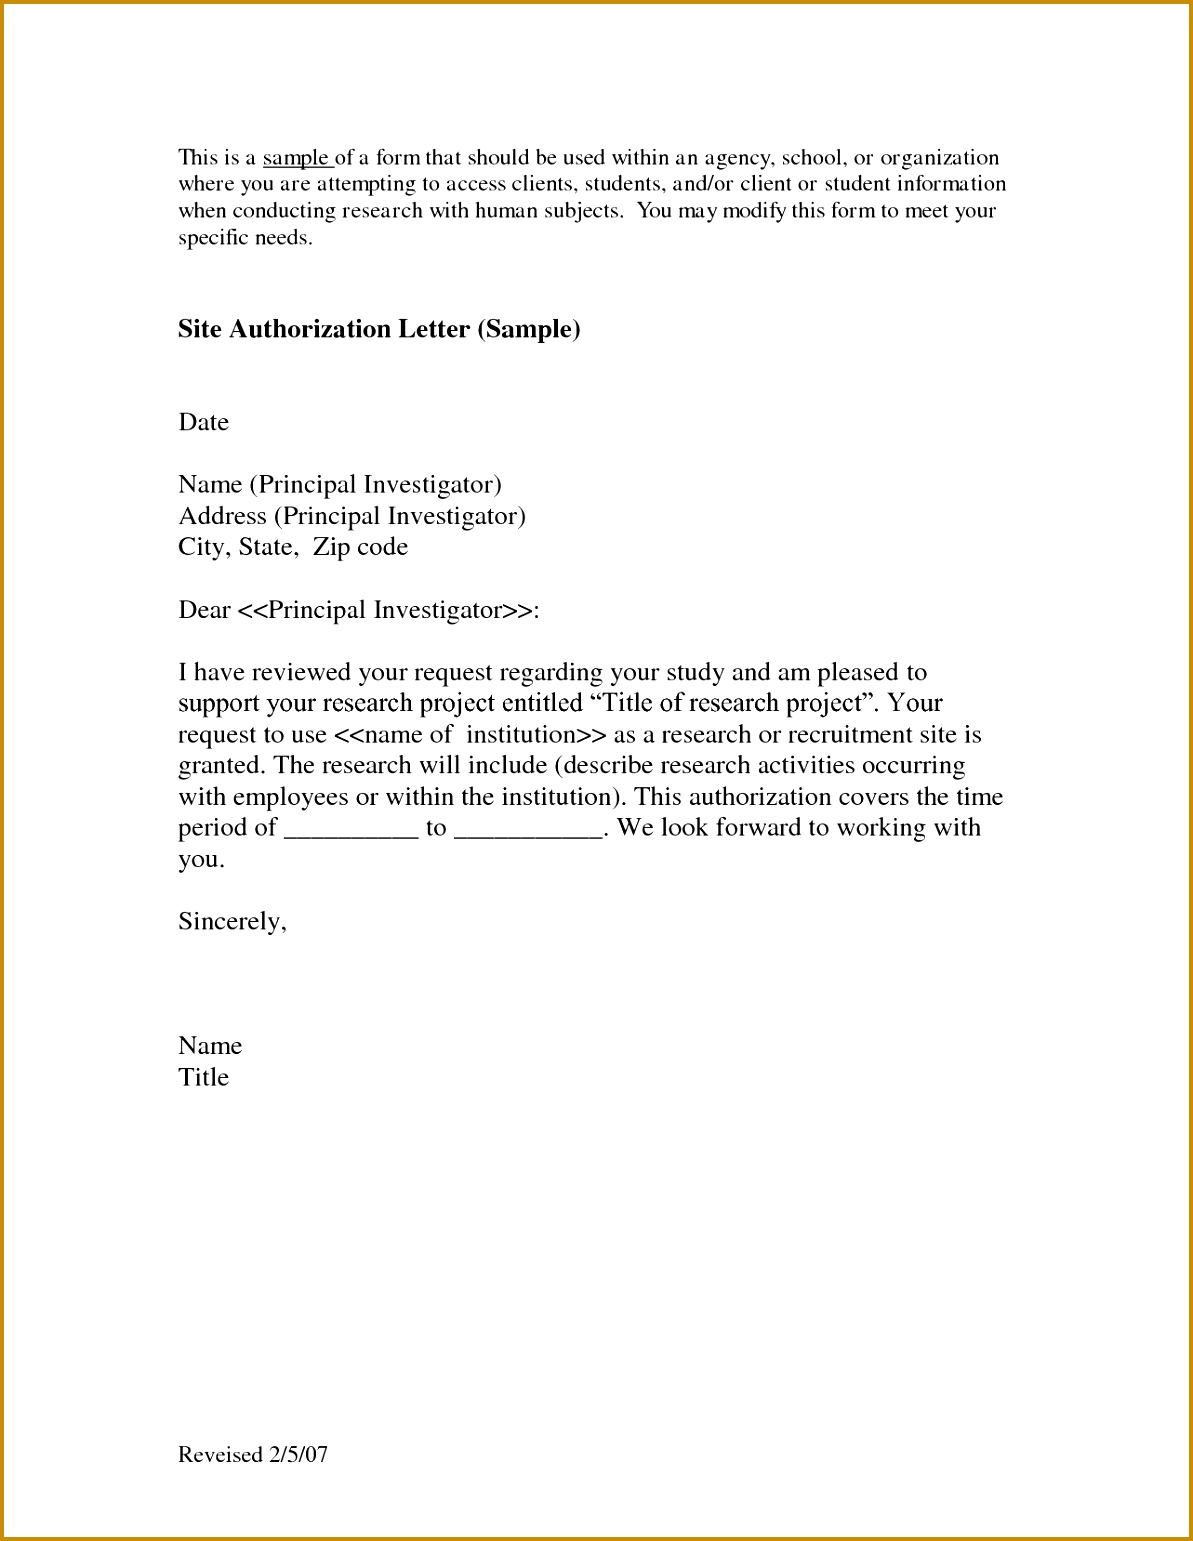 Site Authorization Letter Sample Download as DOC 15411193